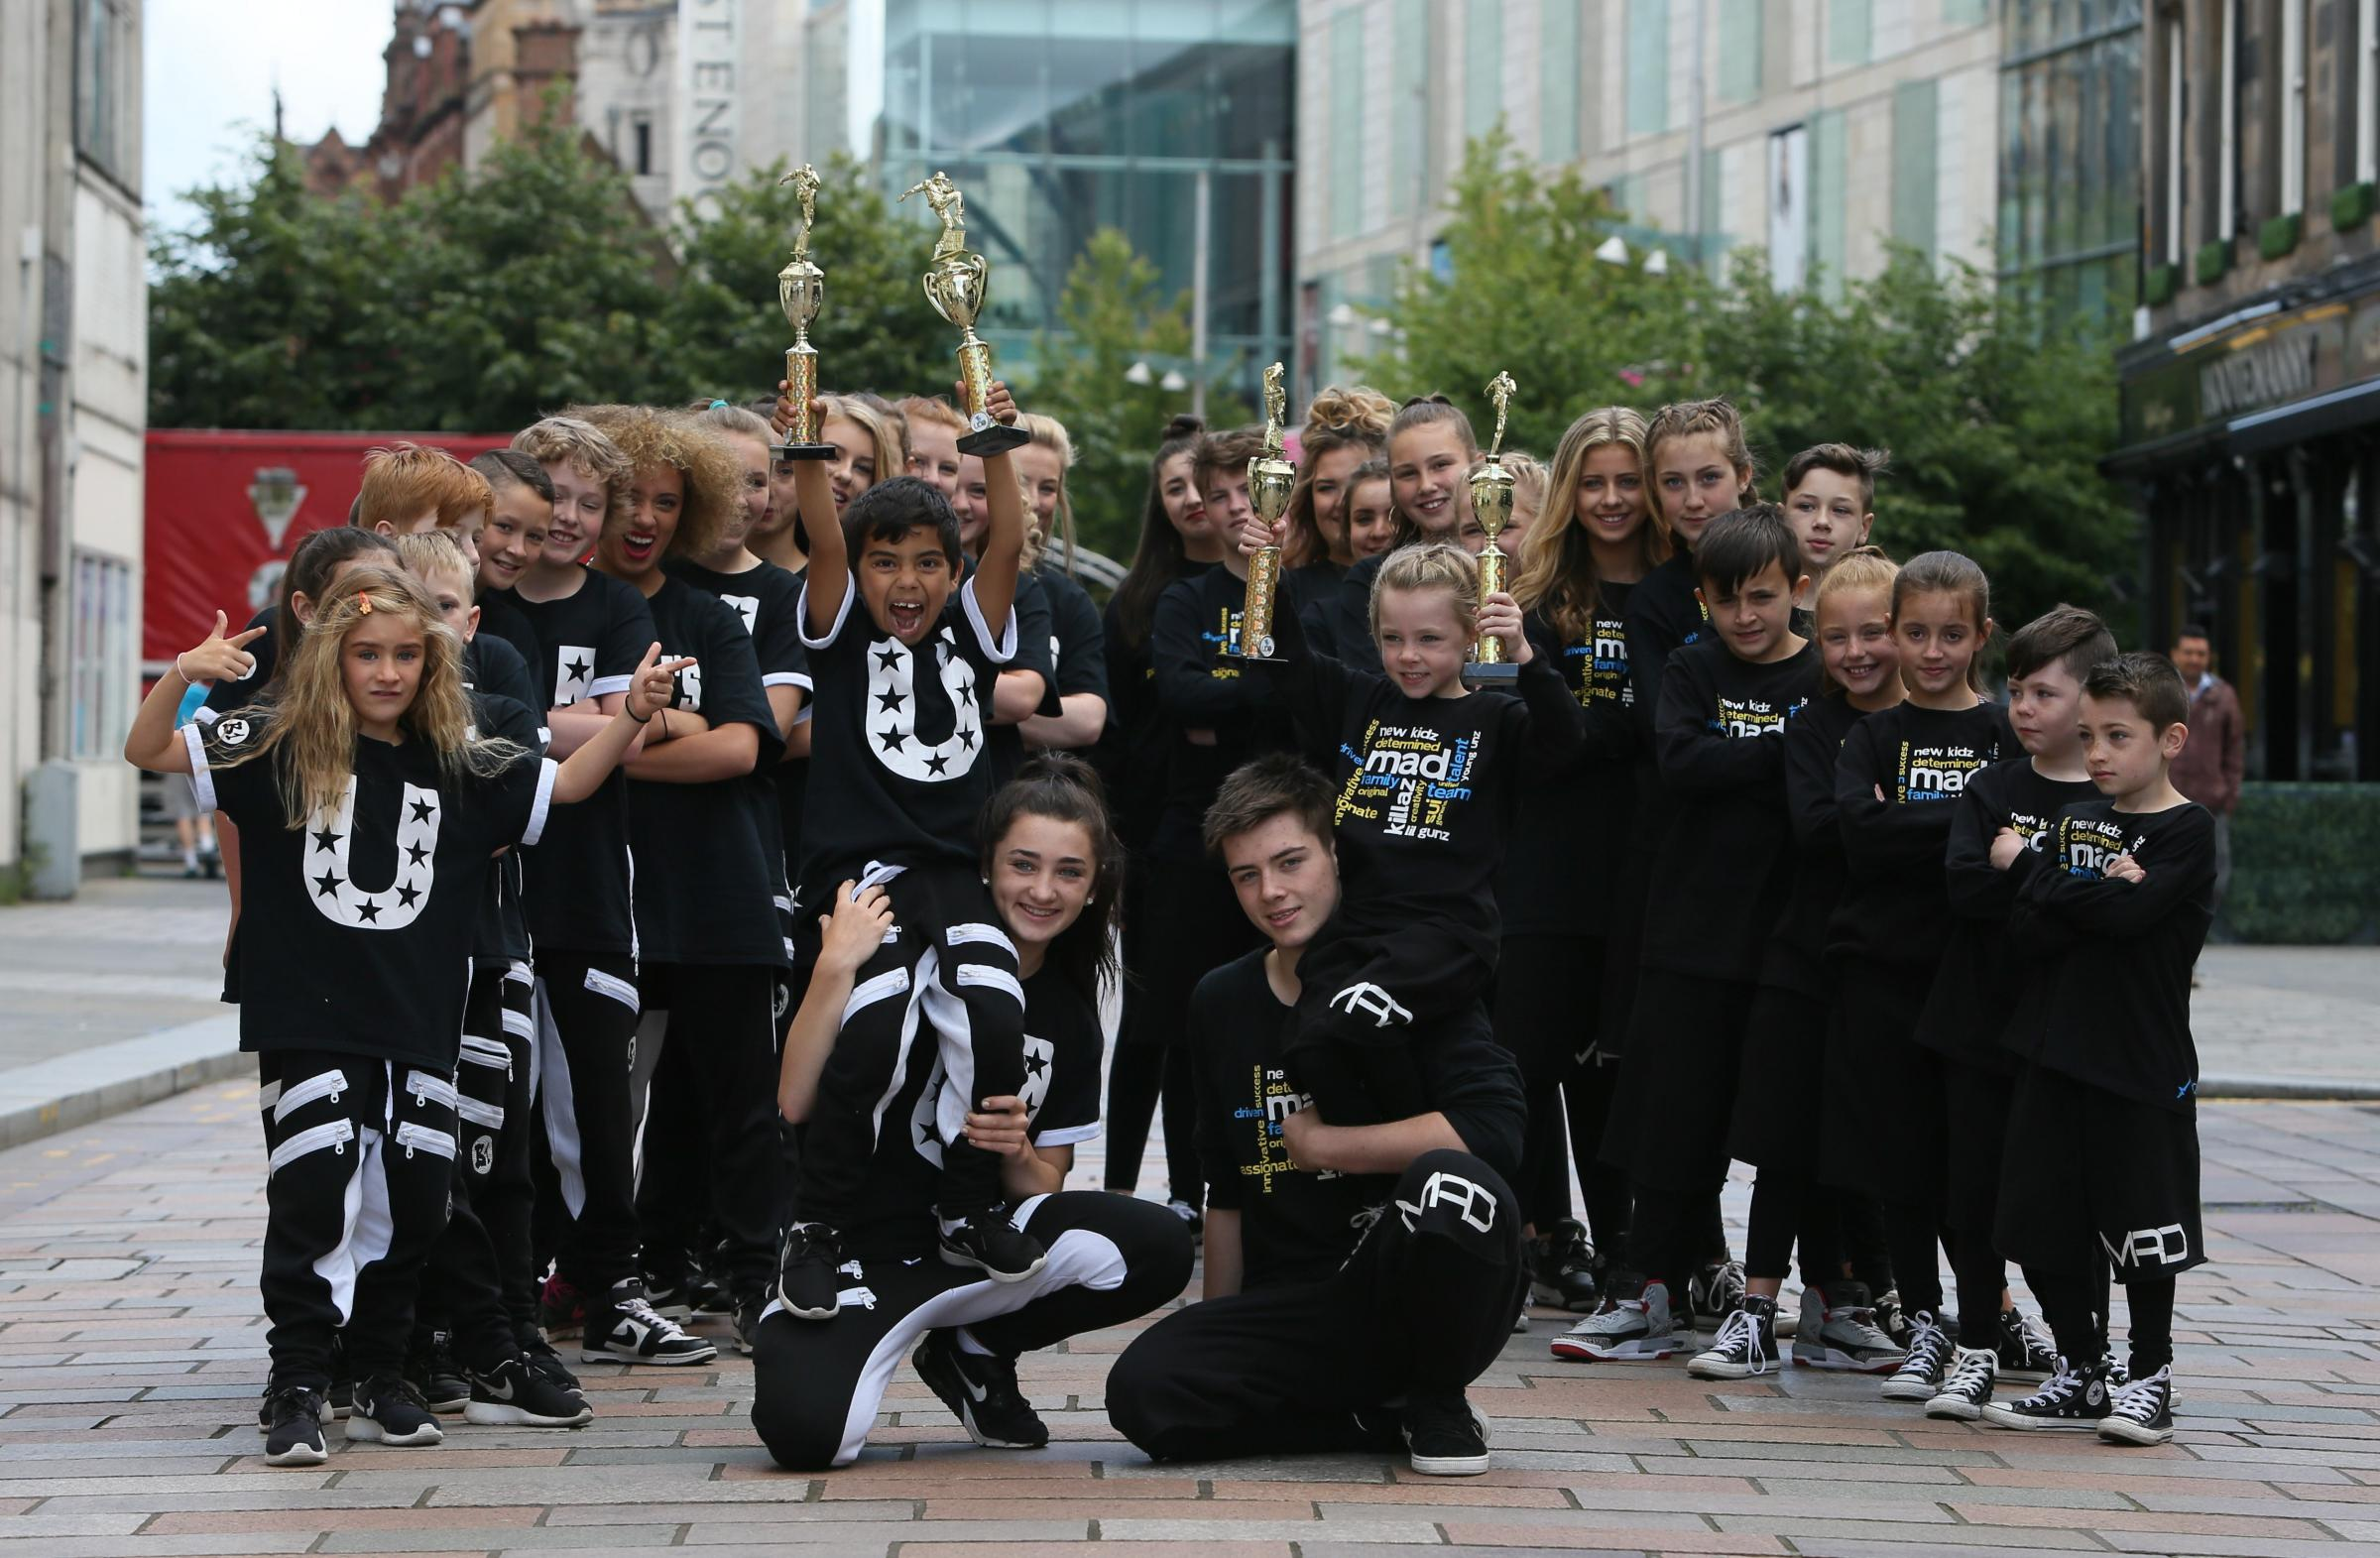 Urbaniks dance group from east and west Dunbartonshire and Mad studios from Coatbridge who took part in the St Enoch's event.